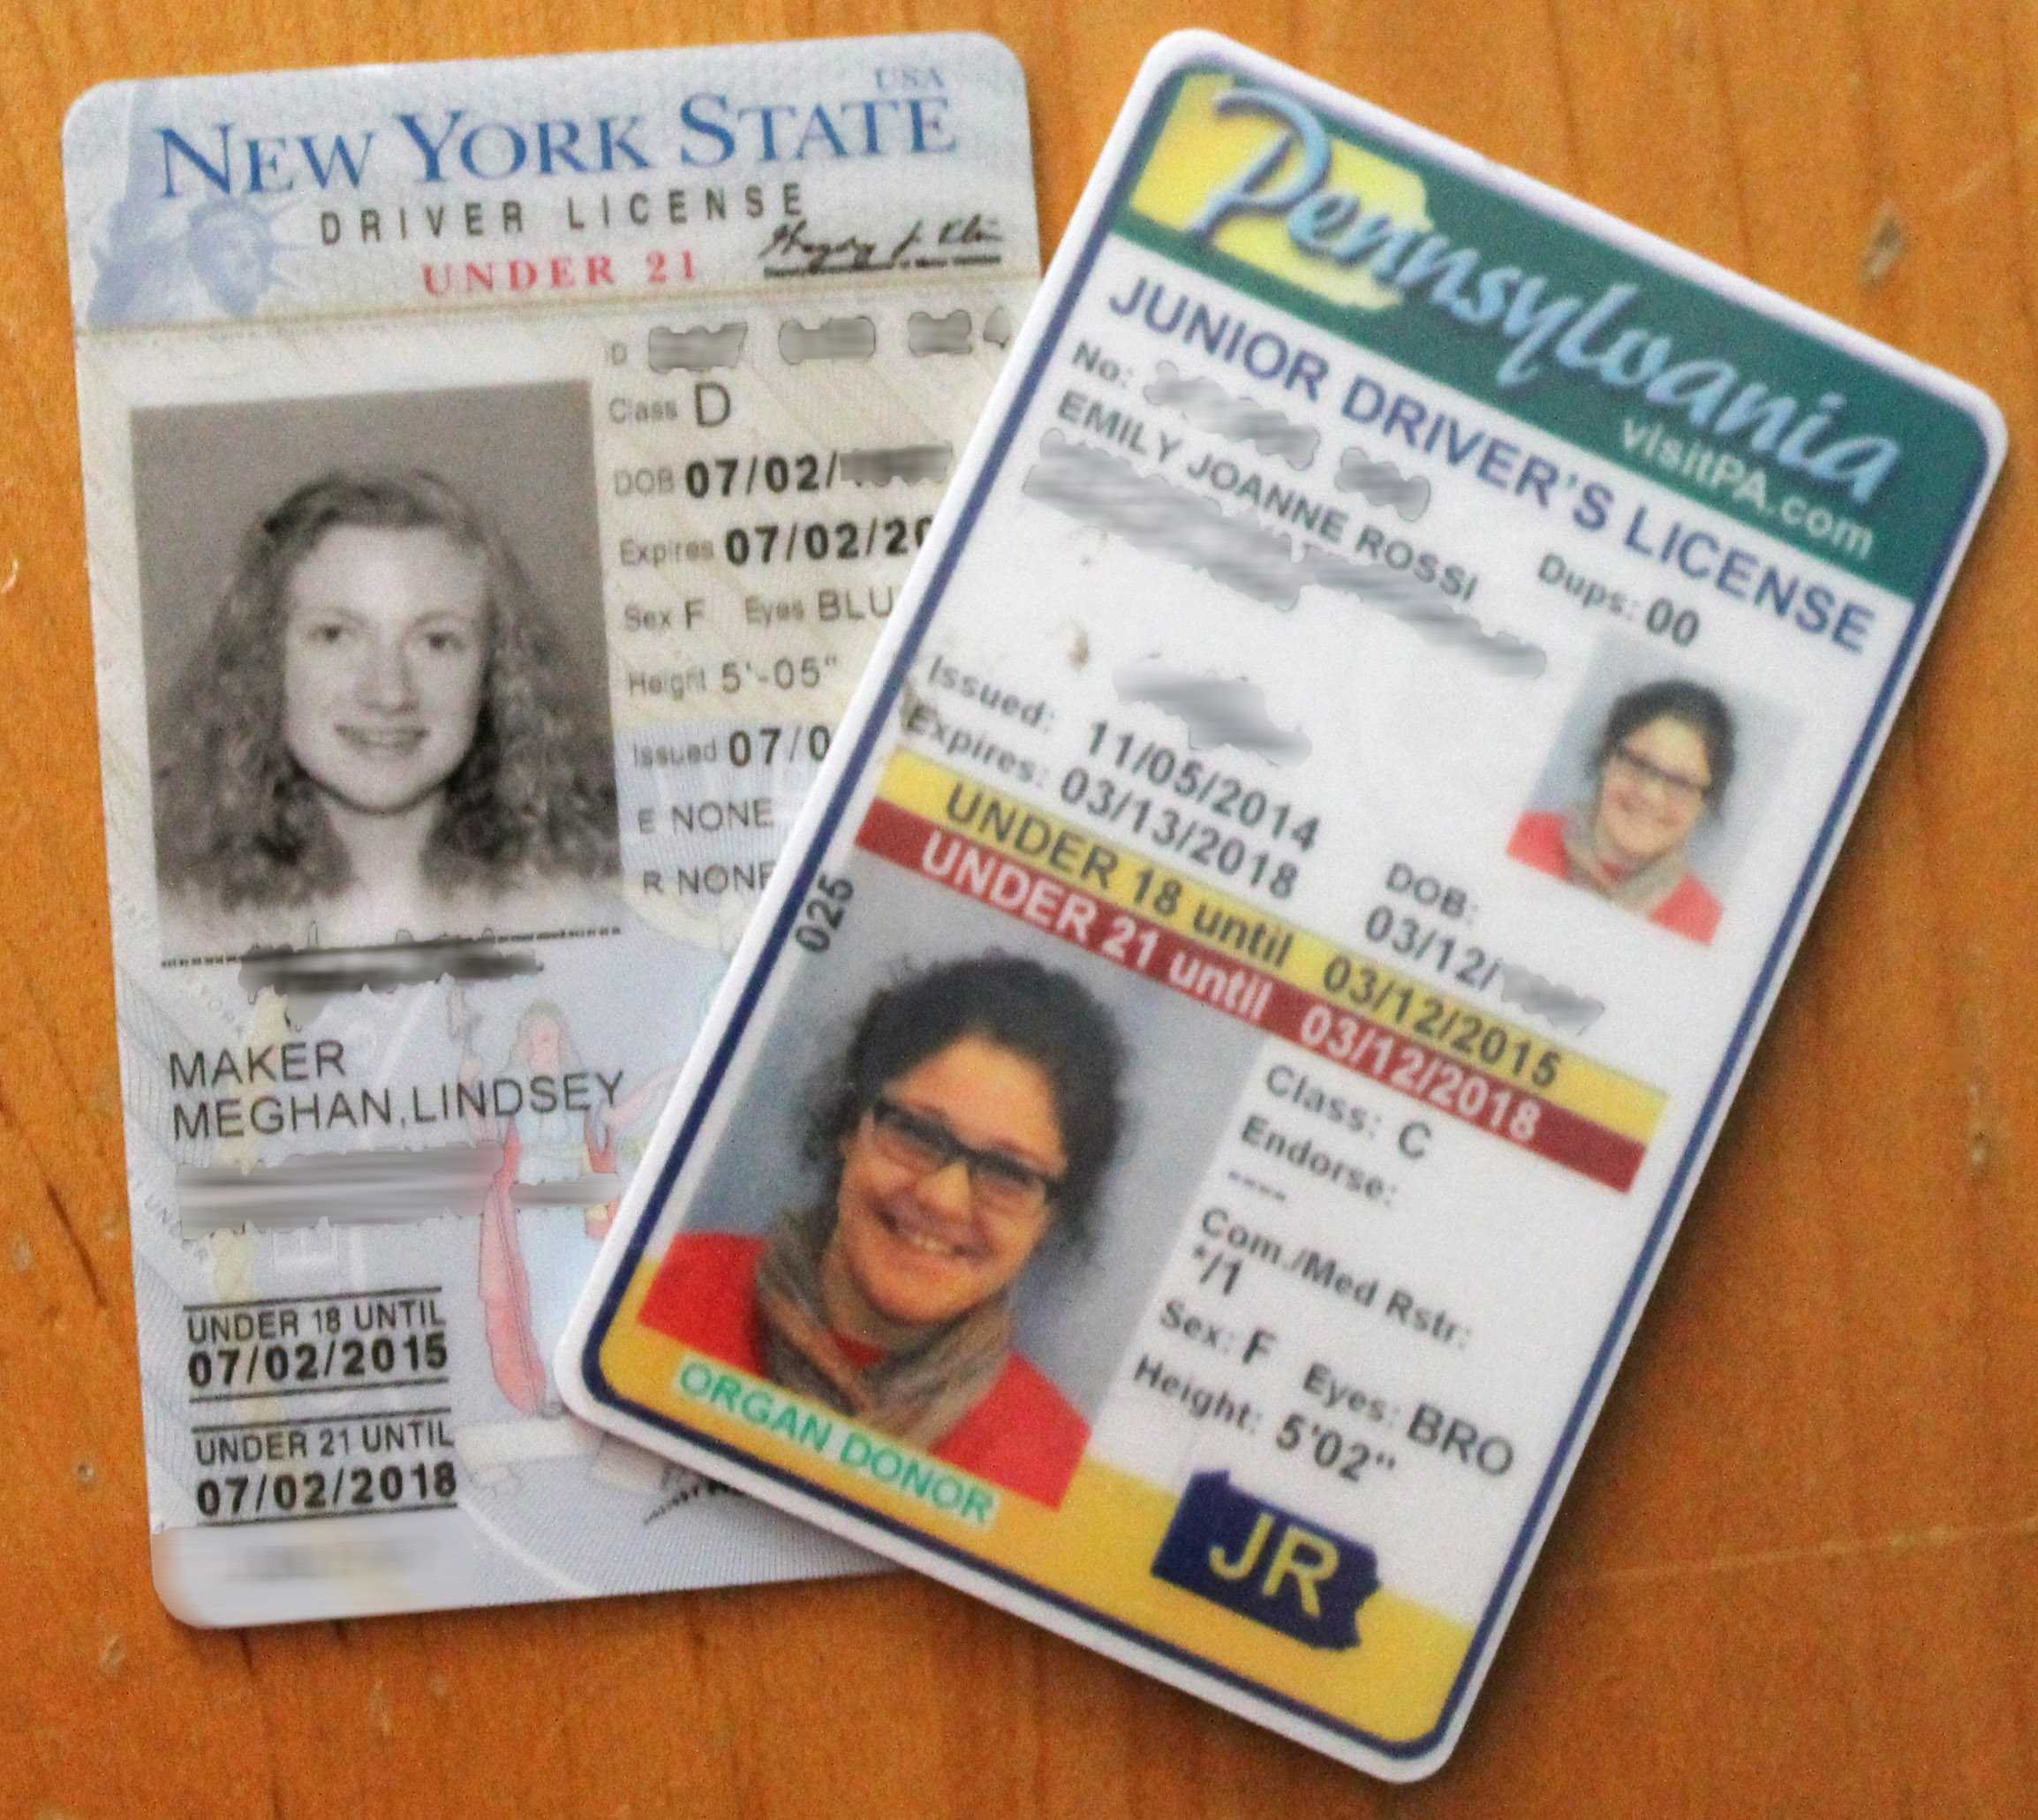 Photocard Driving Licence Renewal - Post Office How much is it to renew photo driving licence